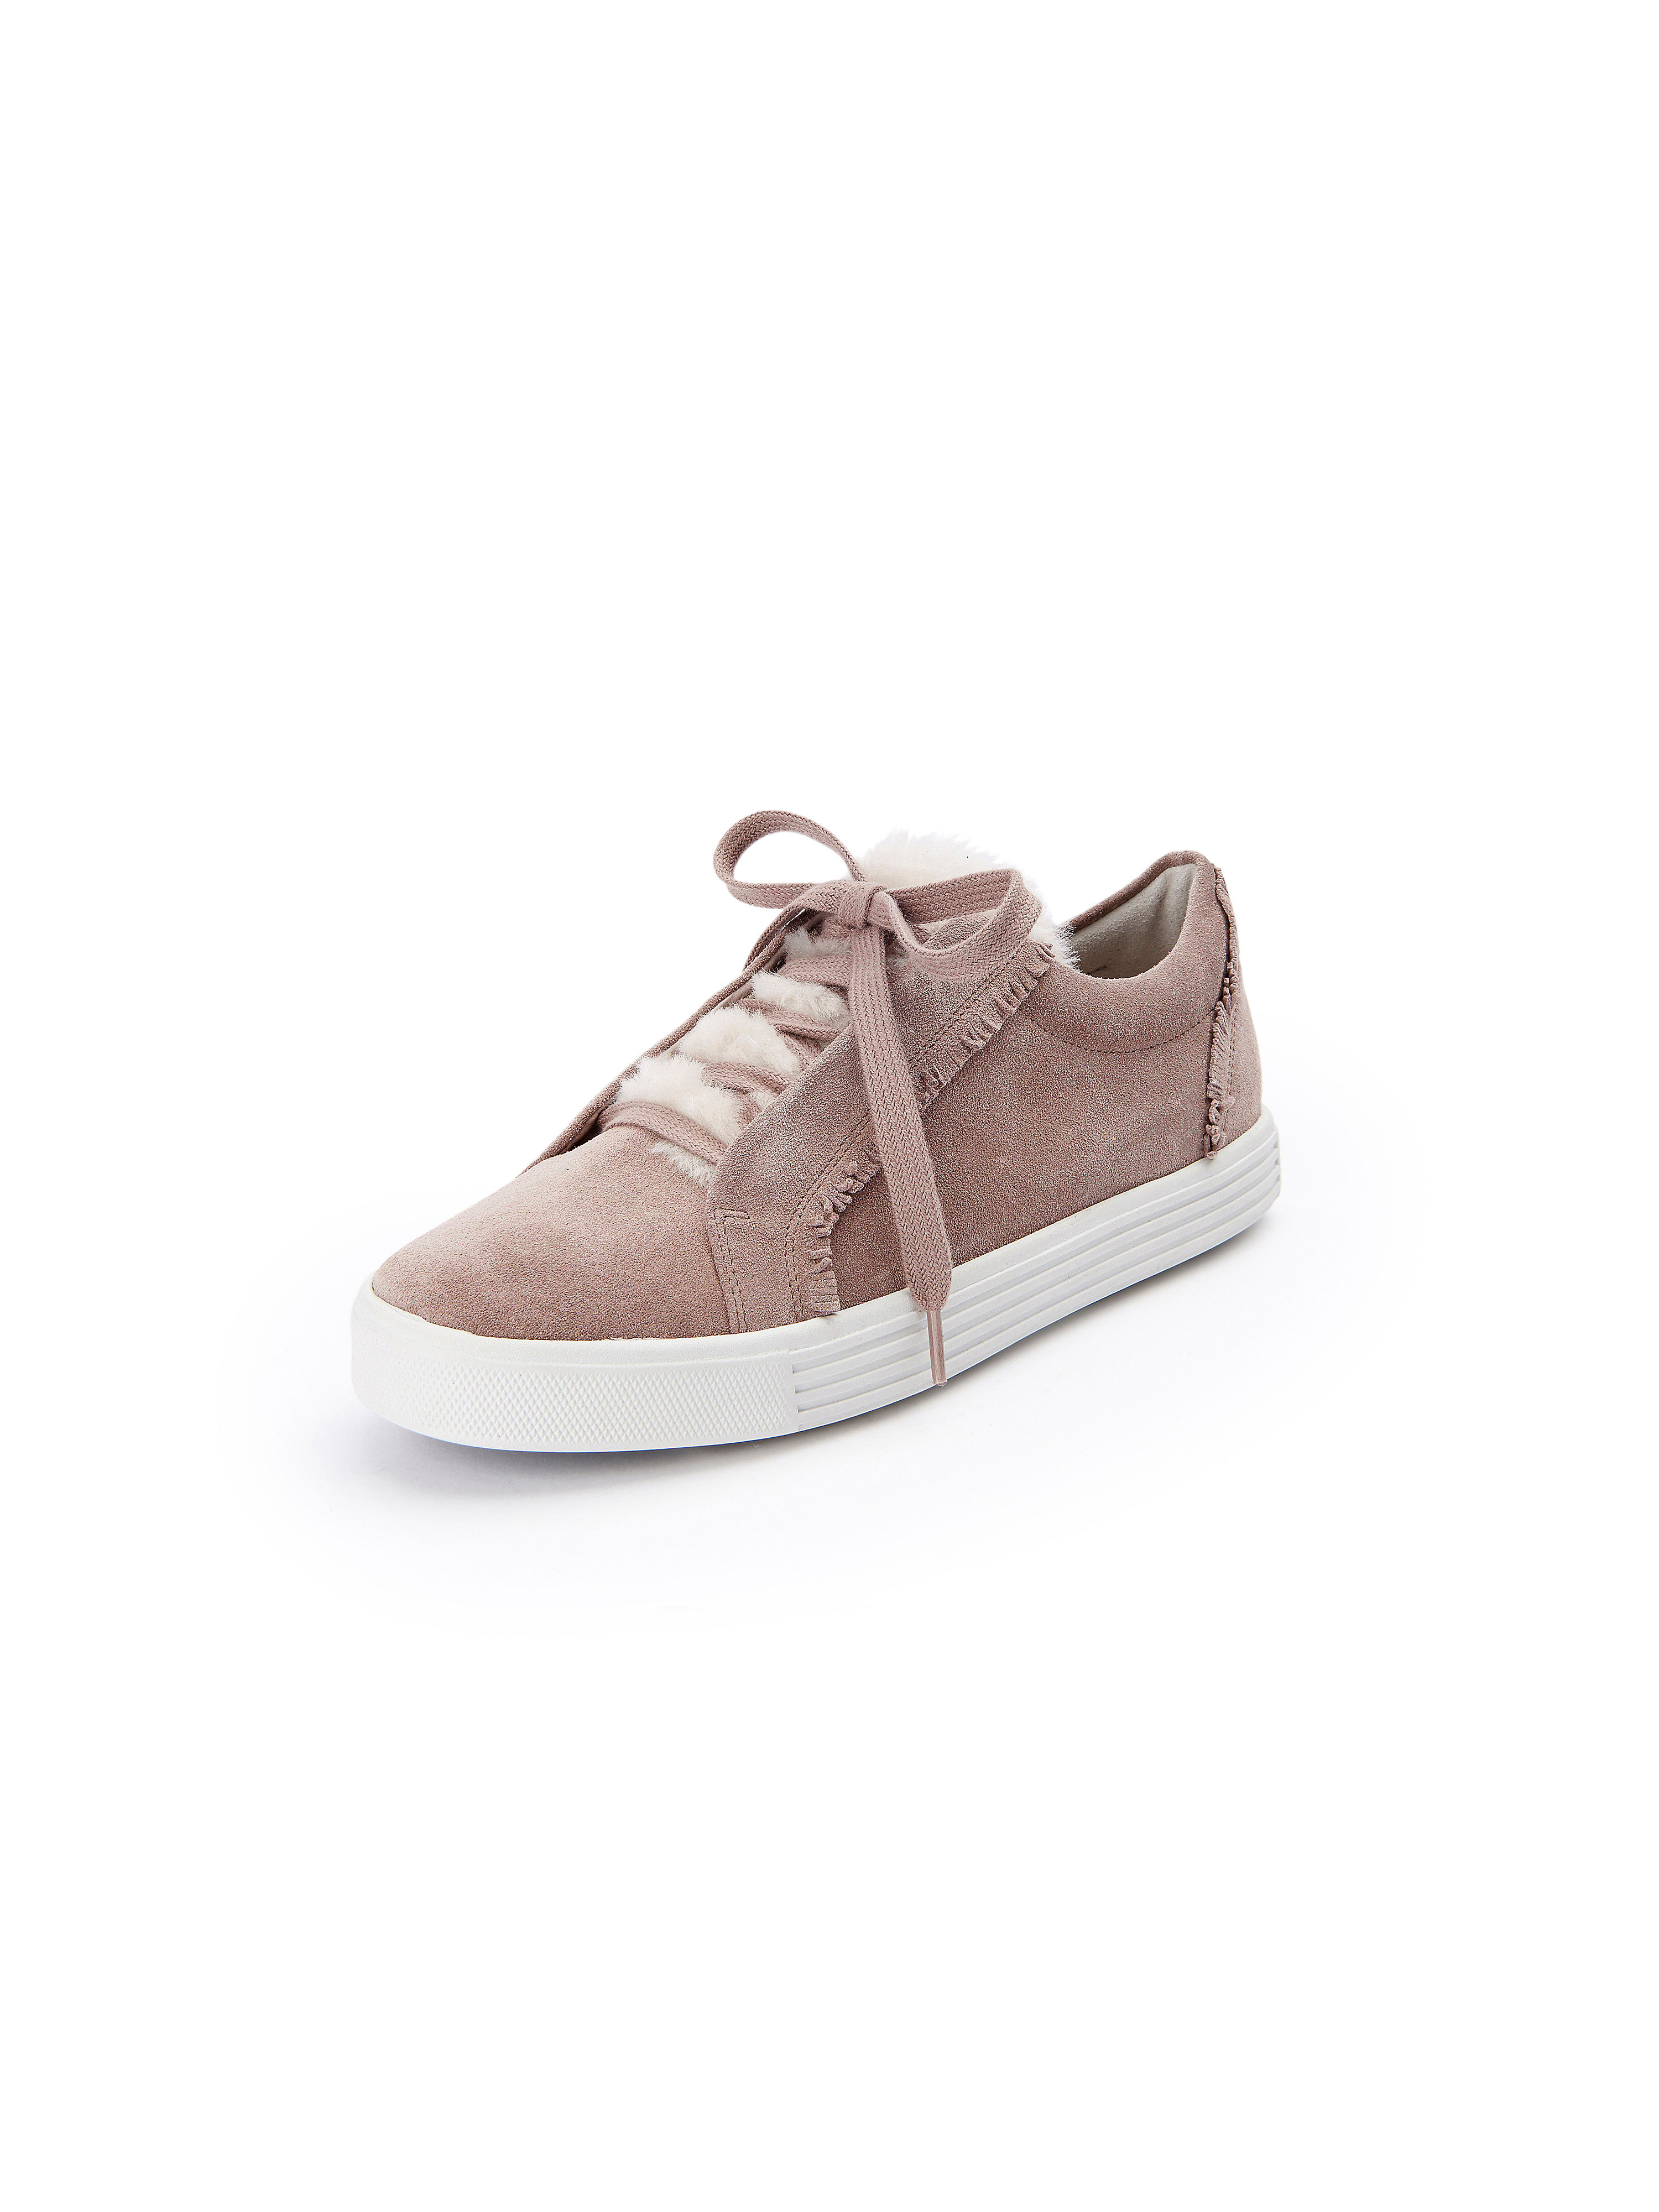 Les sneakers Town cuir, finitions fantaisie Kennel & Schmenger rose taille 40